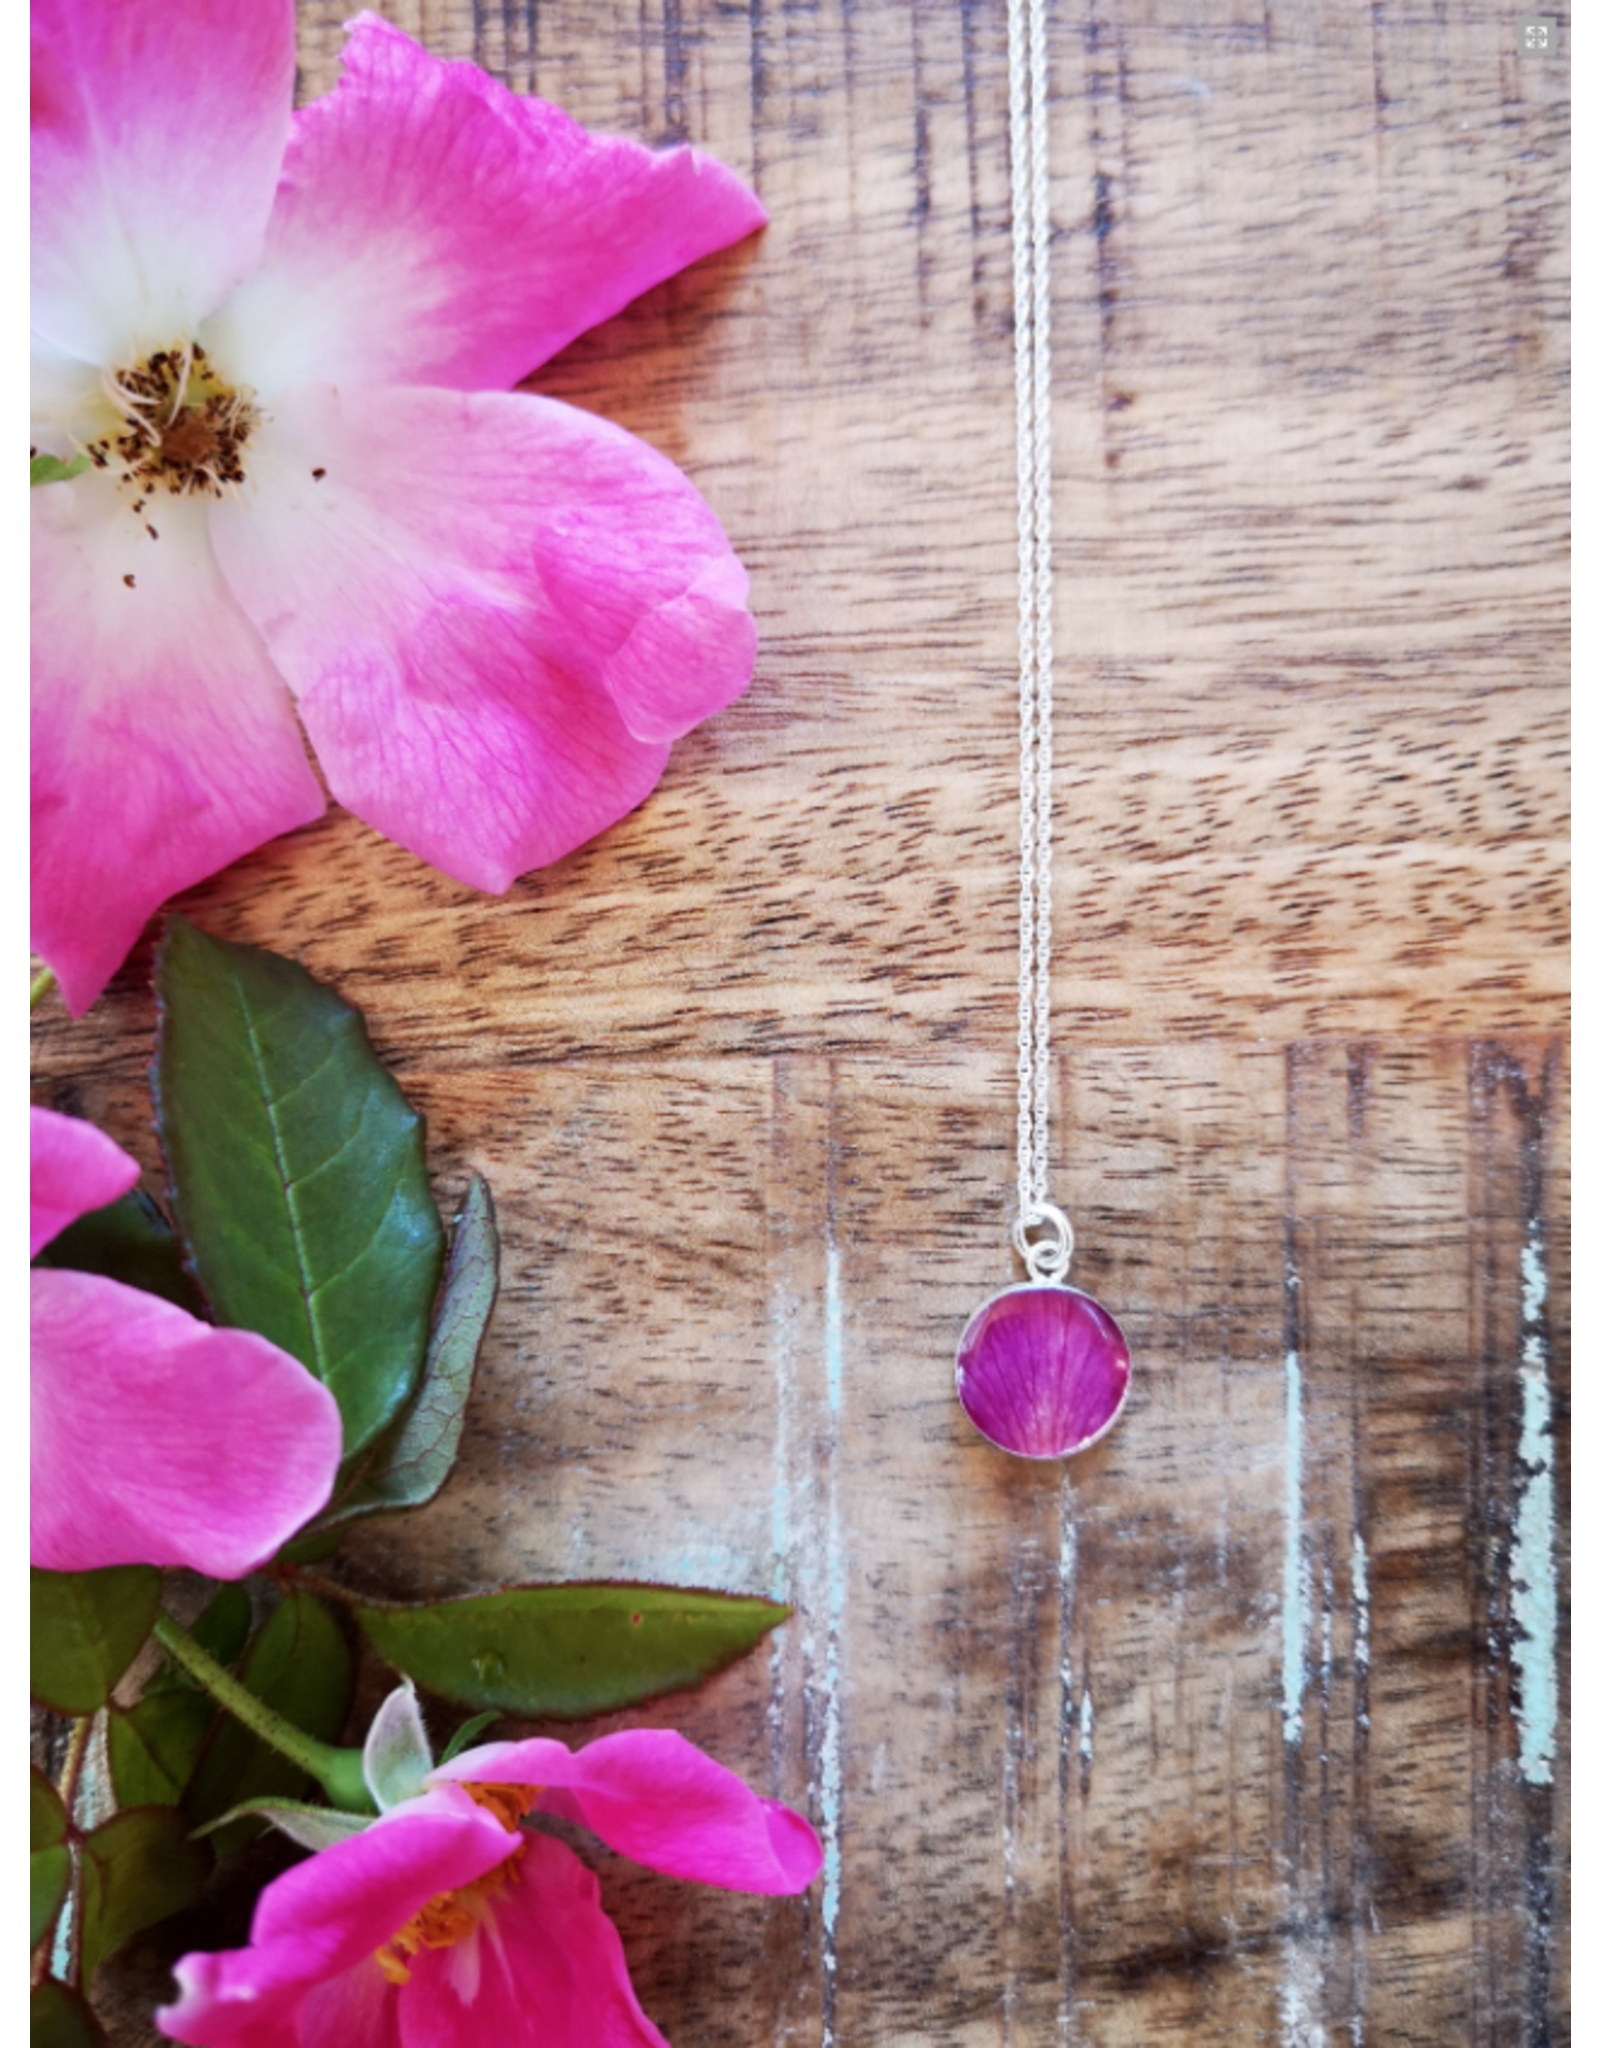 Alberta Wild Rose Silver Necklace 12mm - AB0112mm